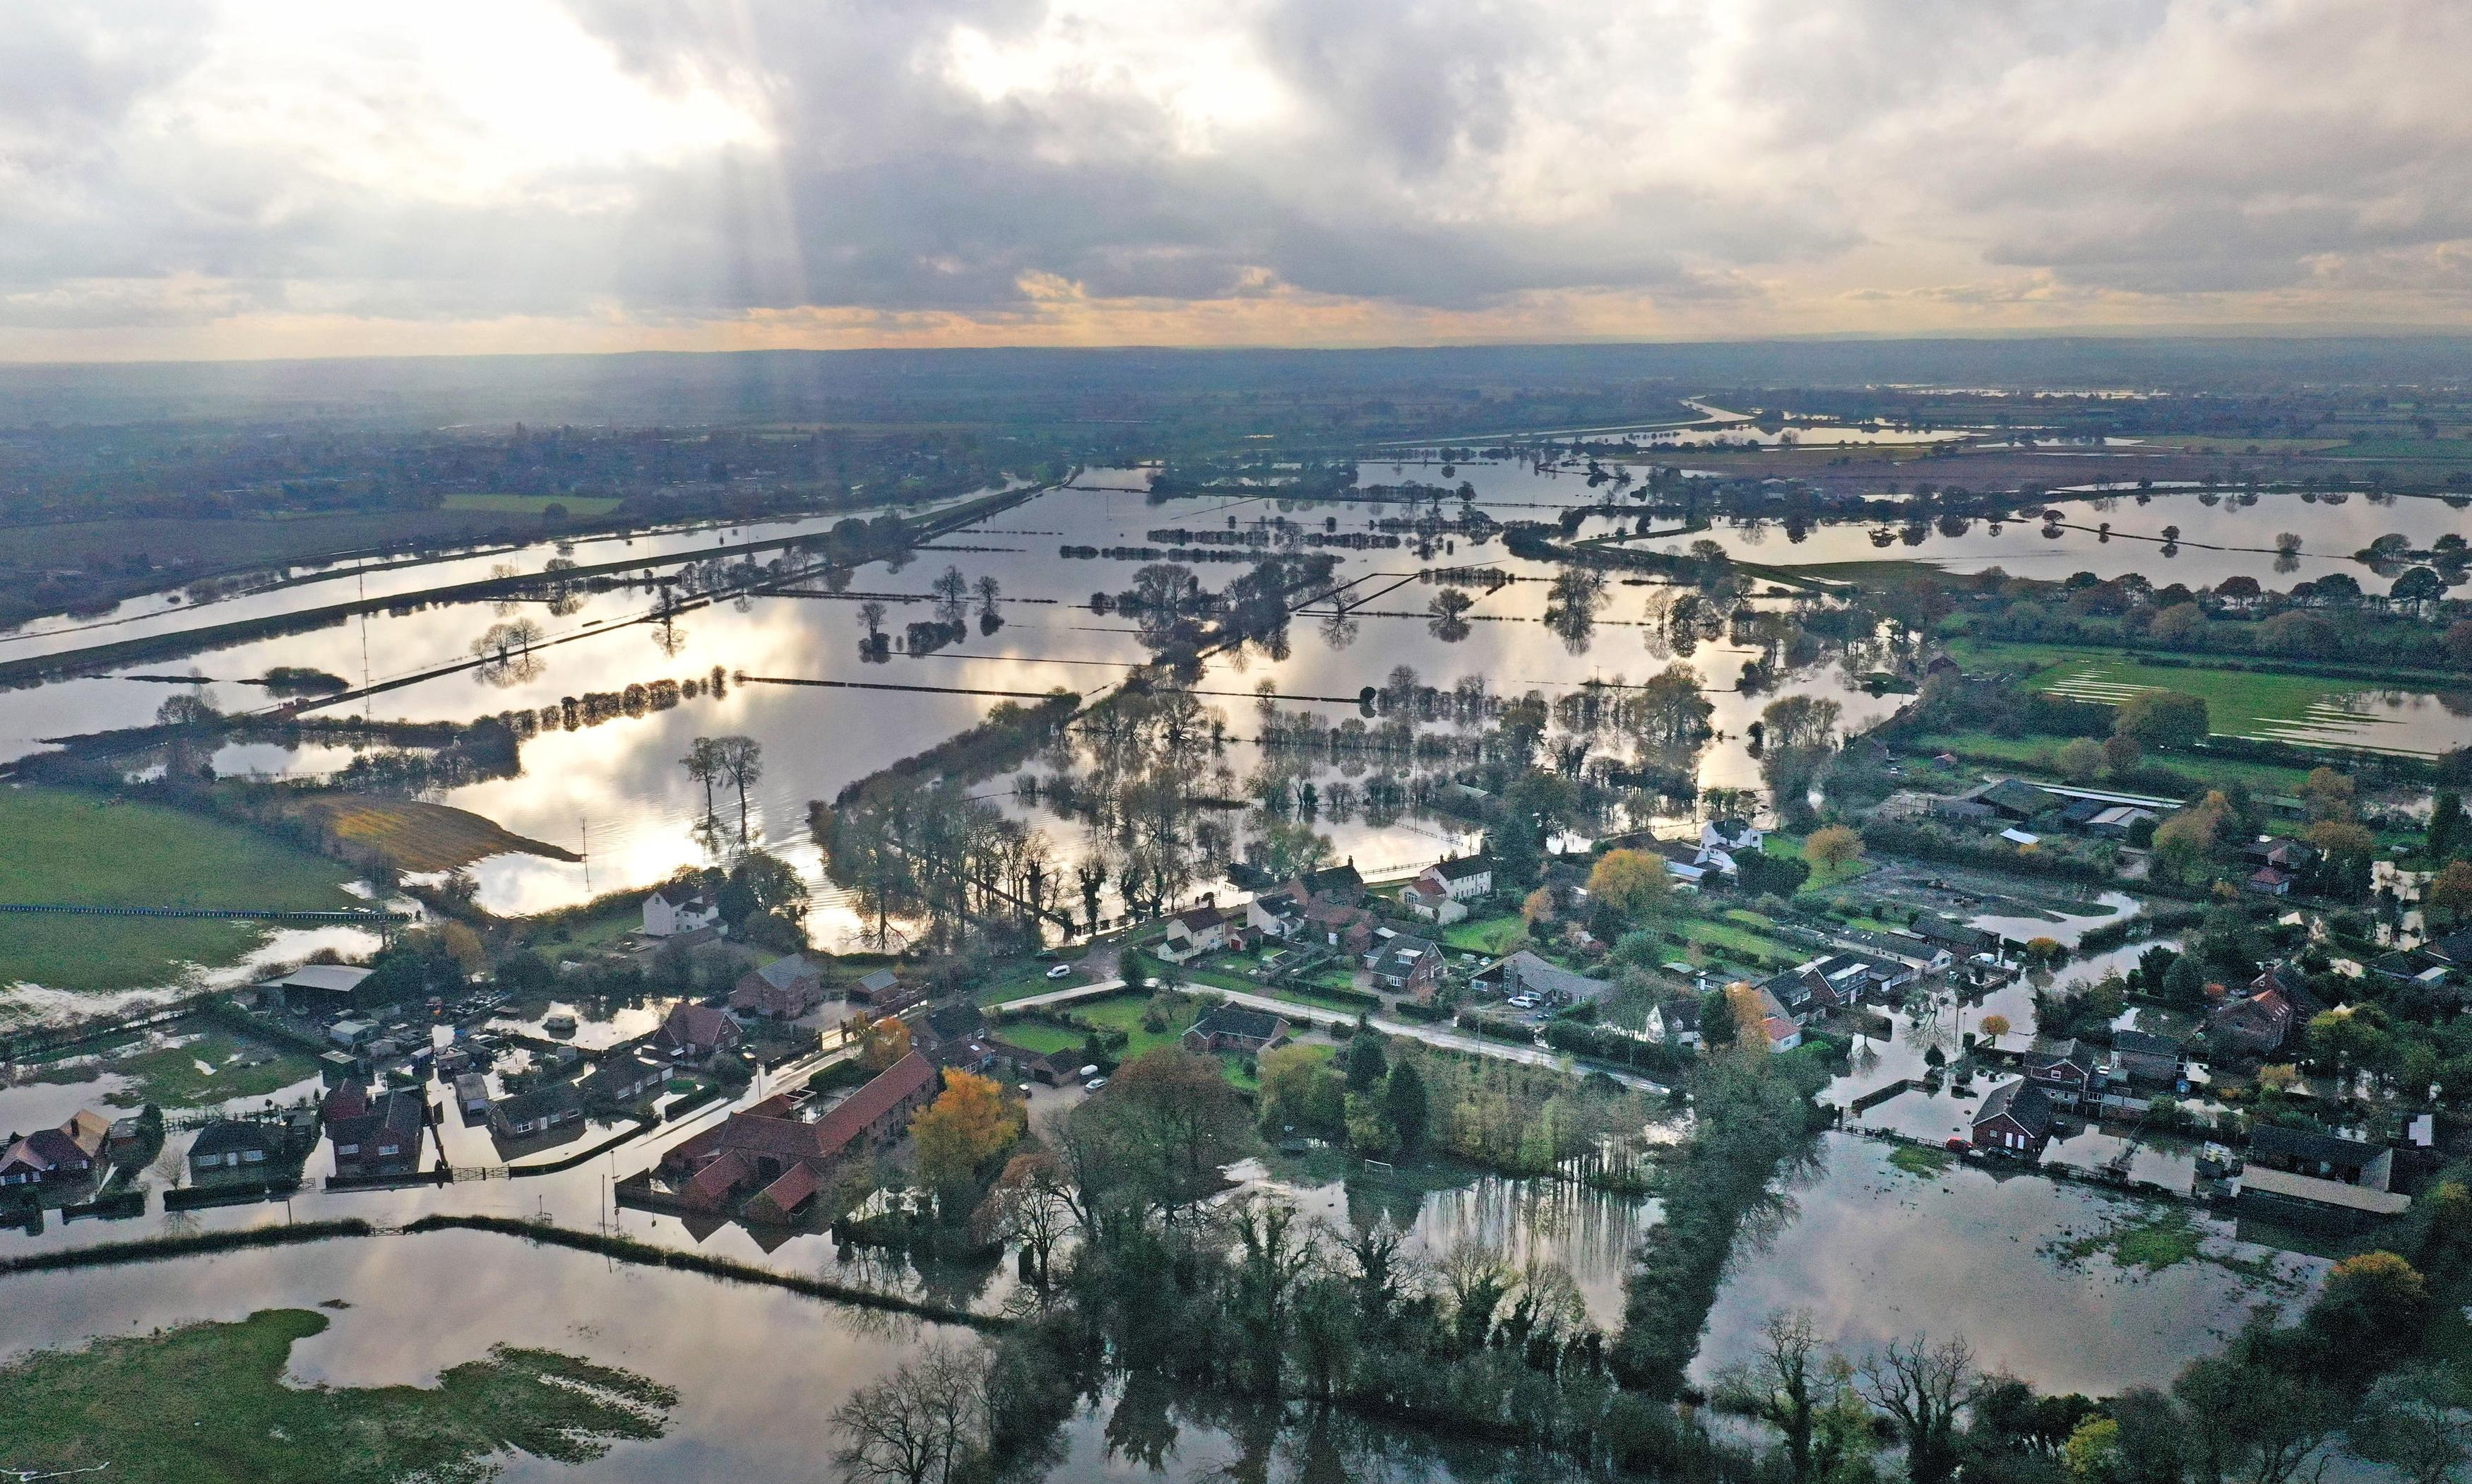 Fishlake flooding: how have you been affected?